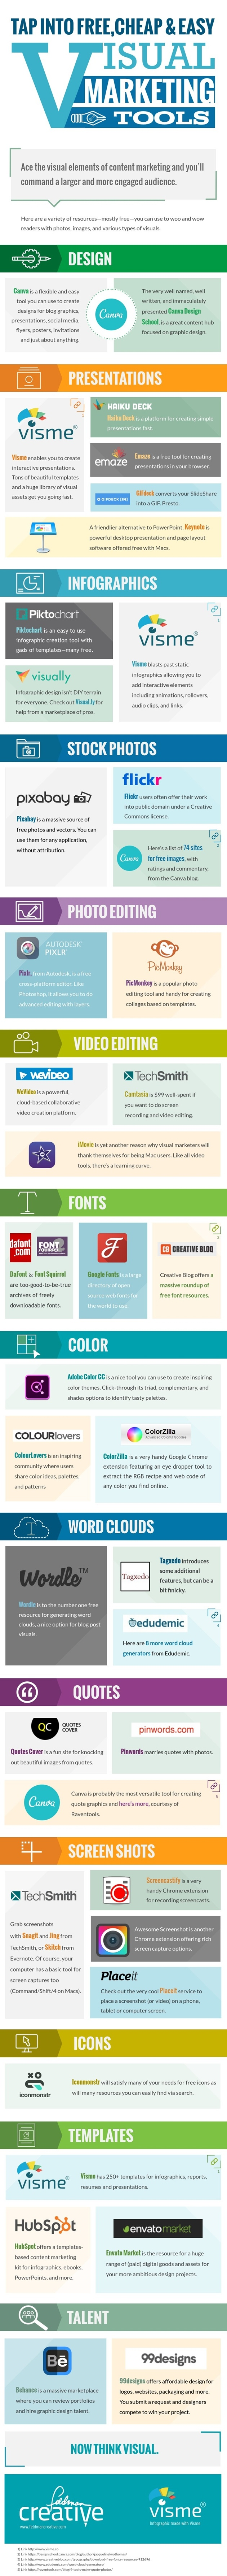 160618-free-cheap-visual-content-marketing-tools-infographic